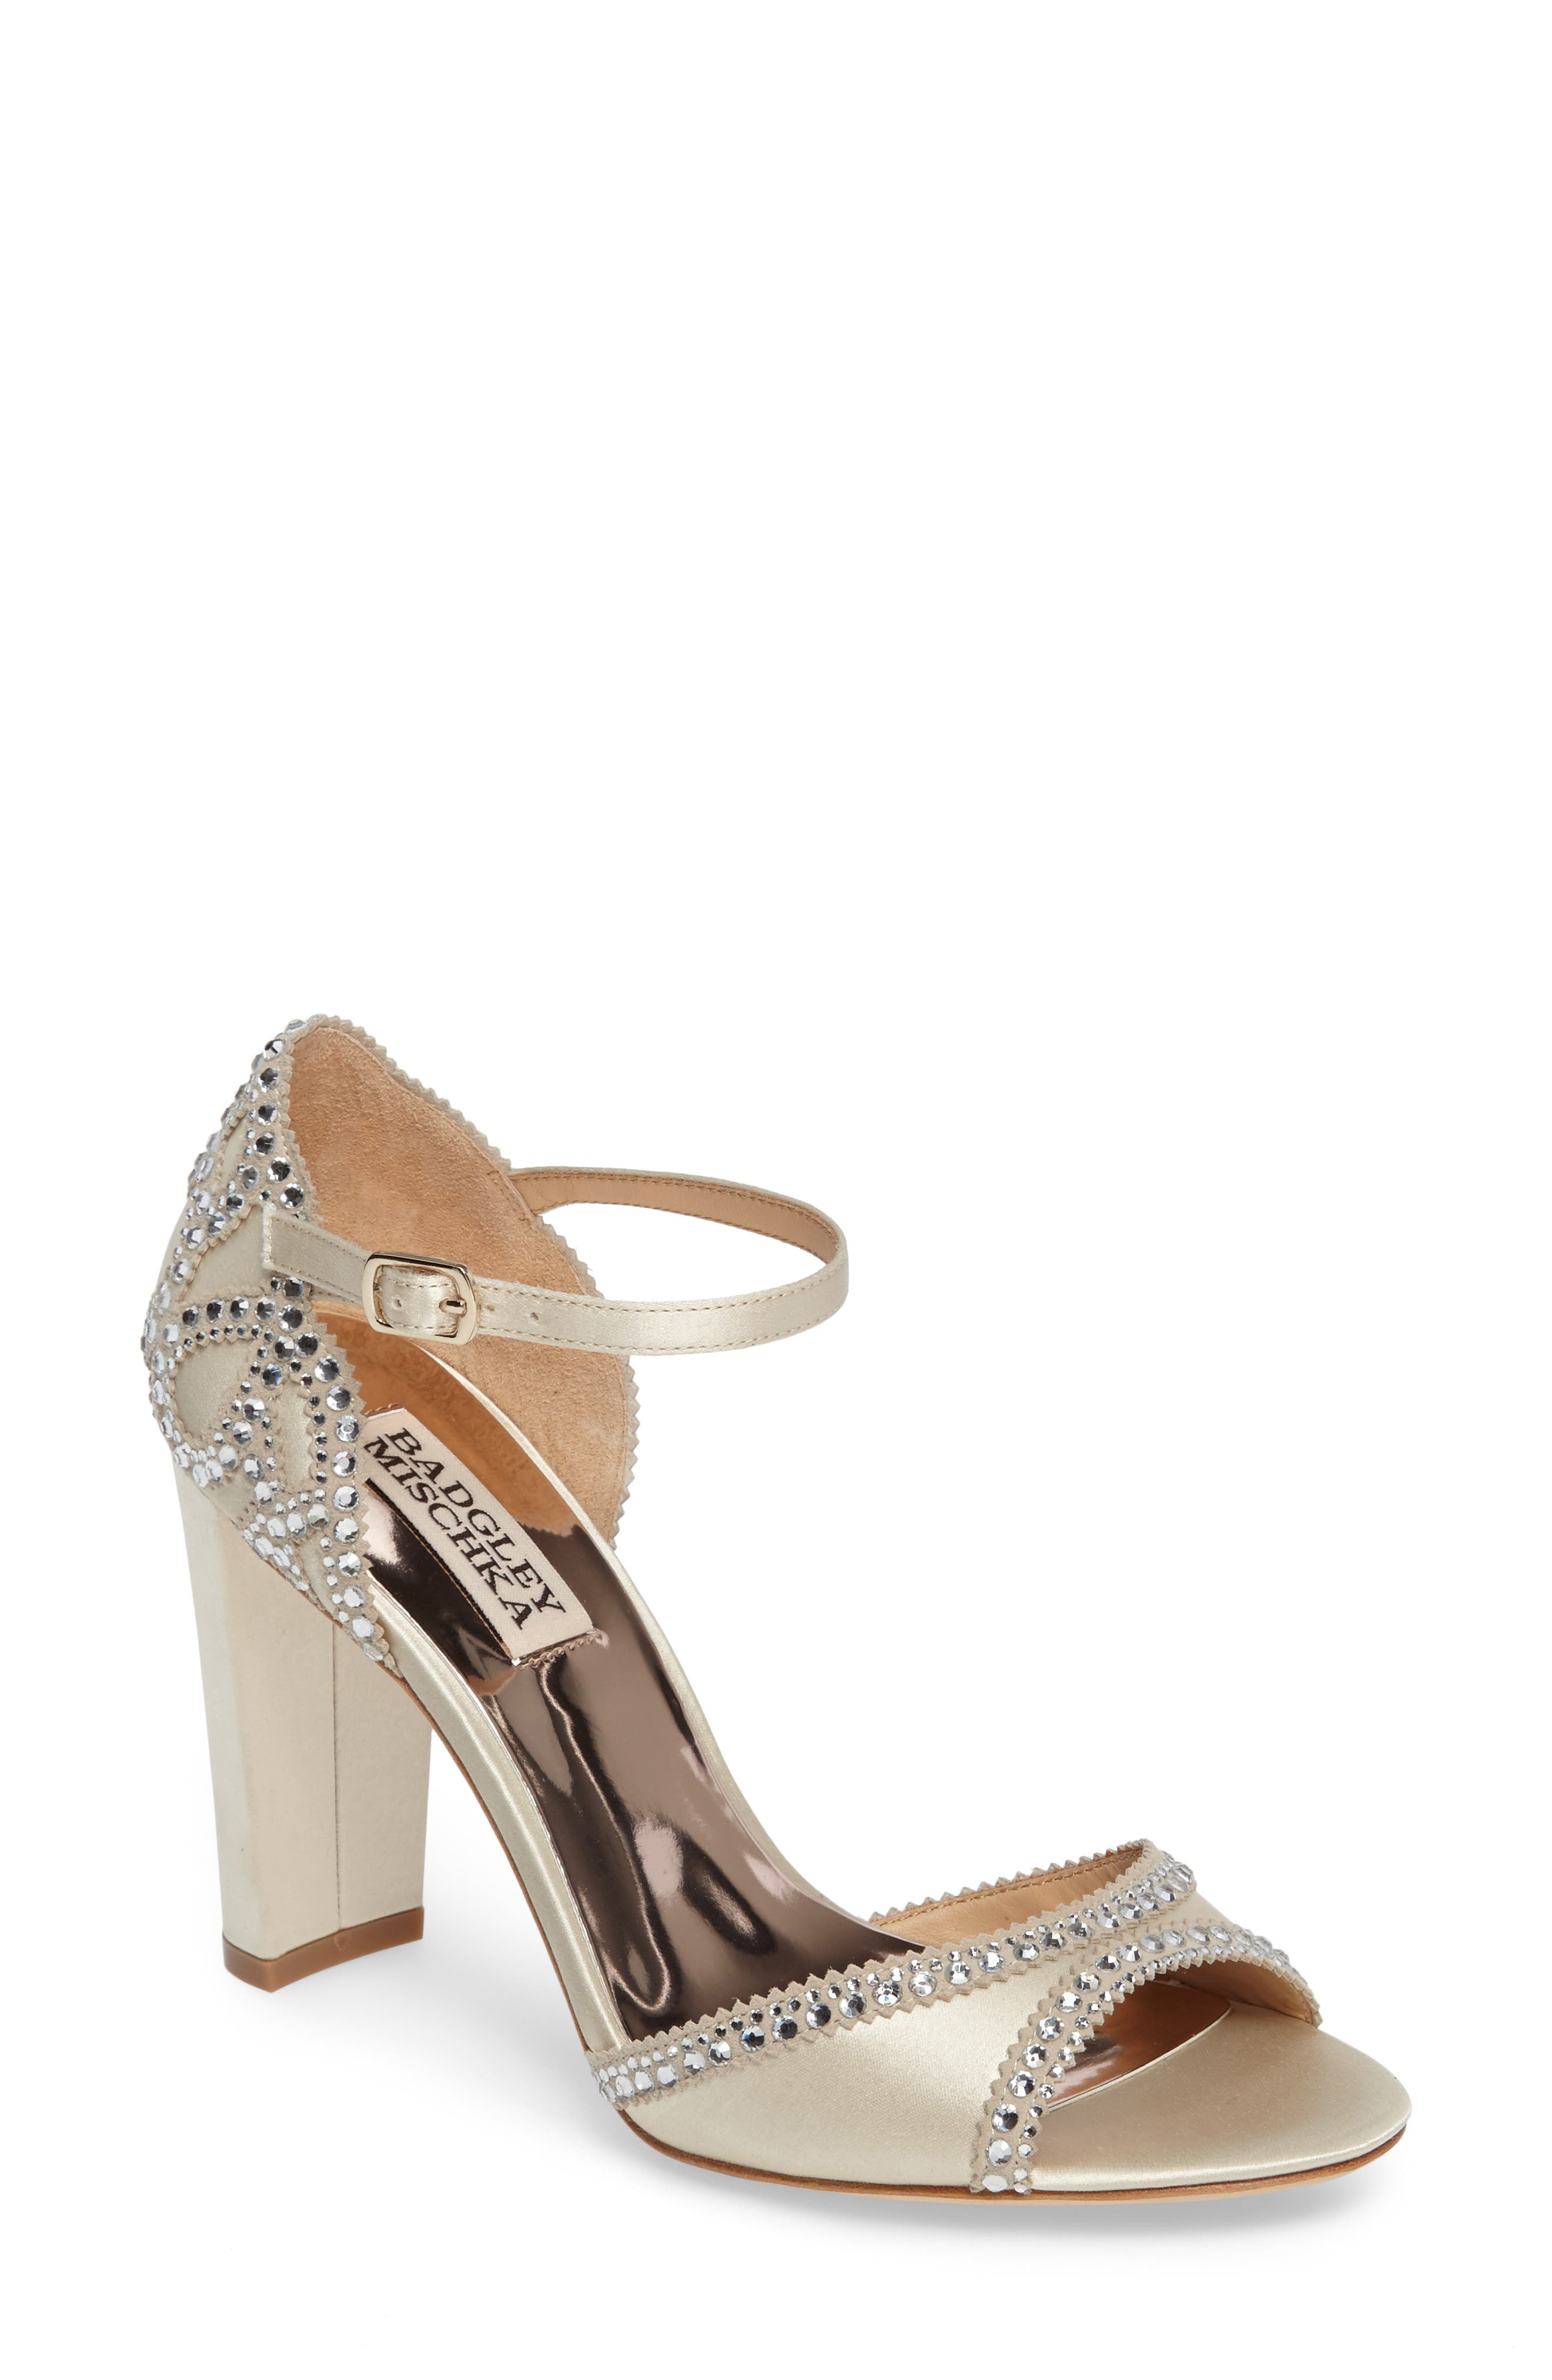 BADGLEY MISCHKA Kelly Embellished Crescent Heel Sandal